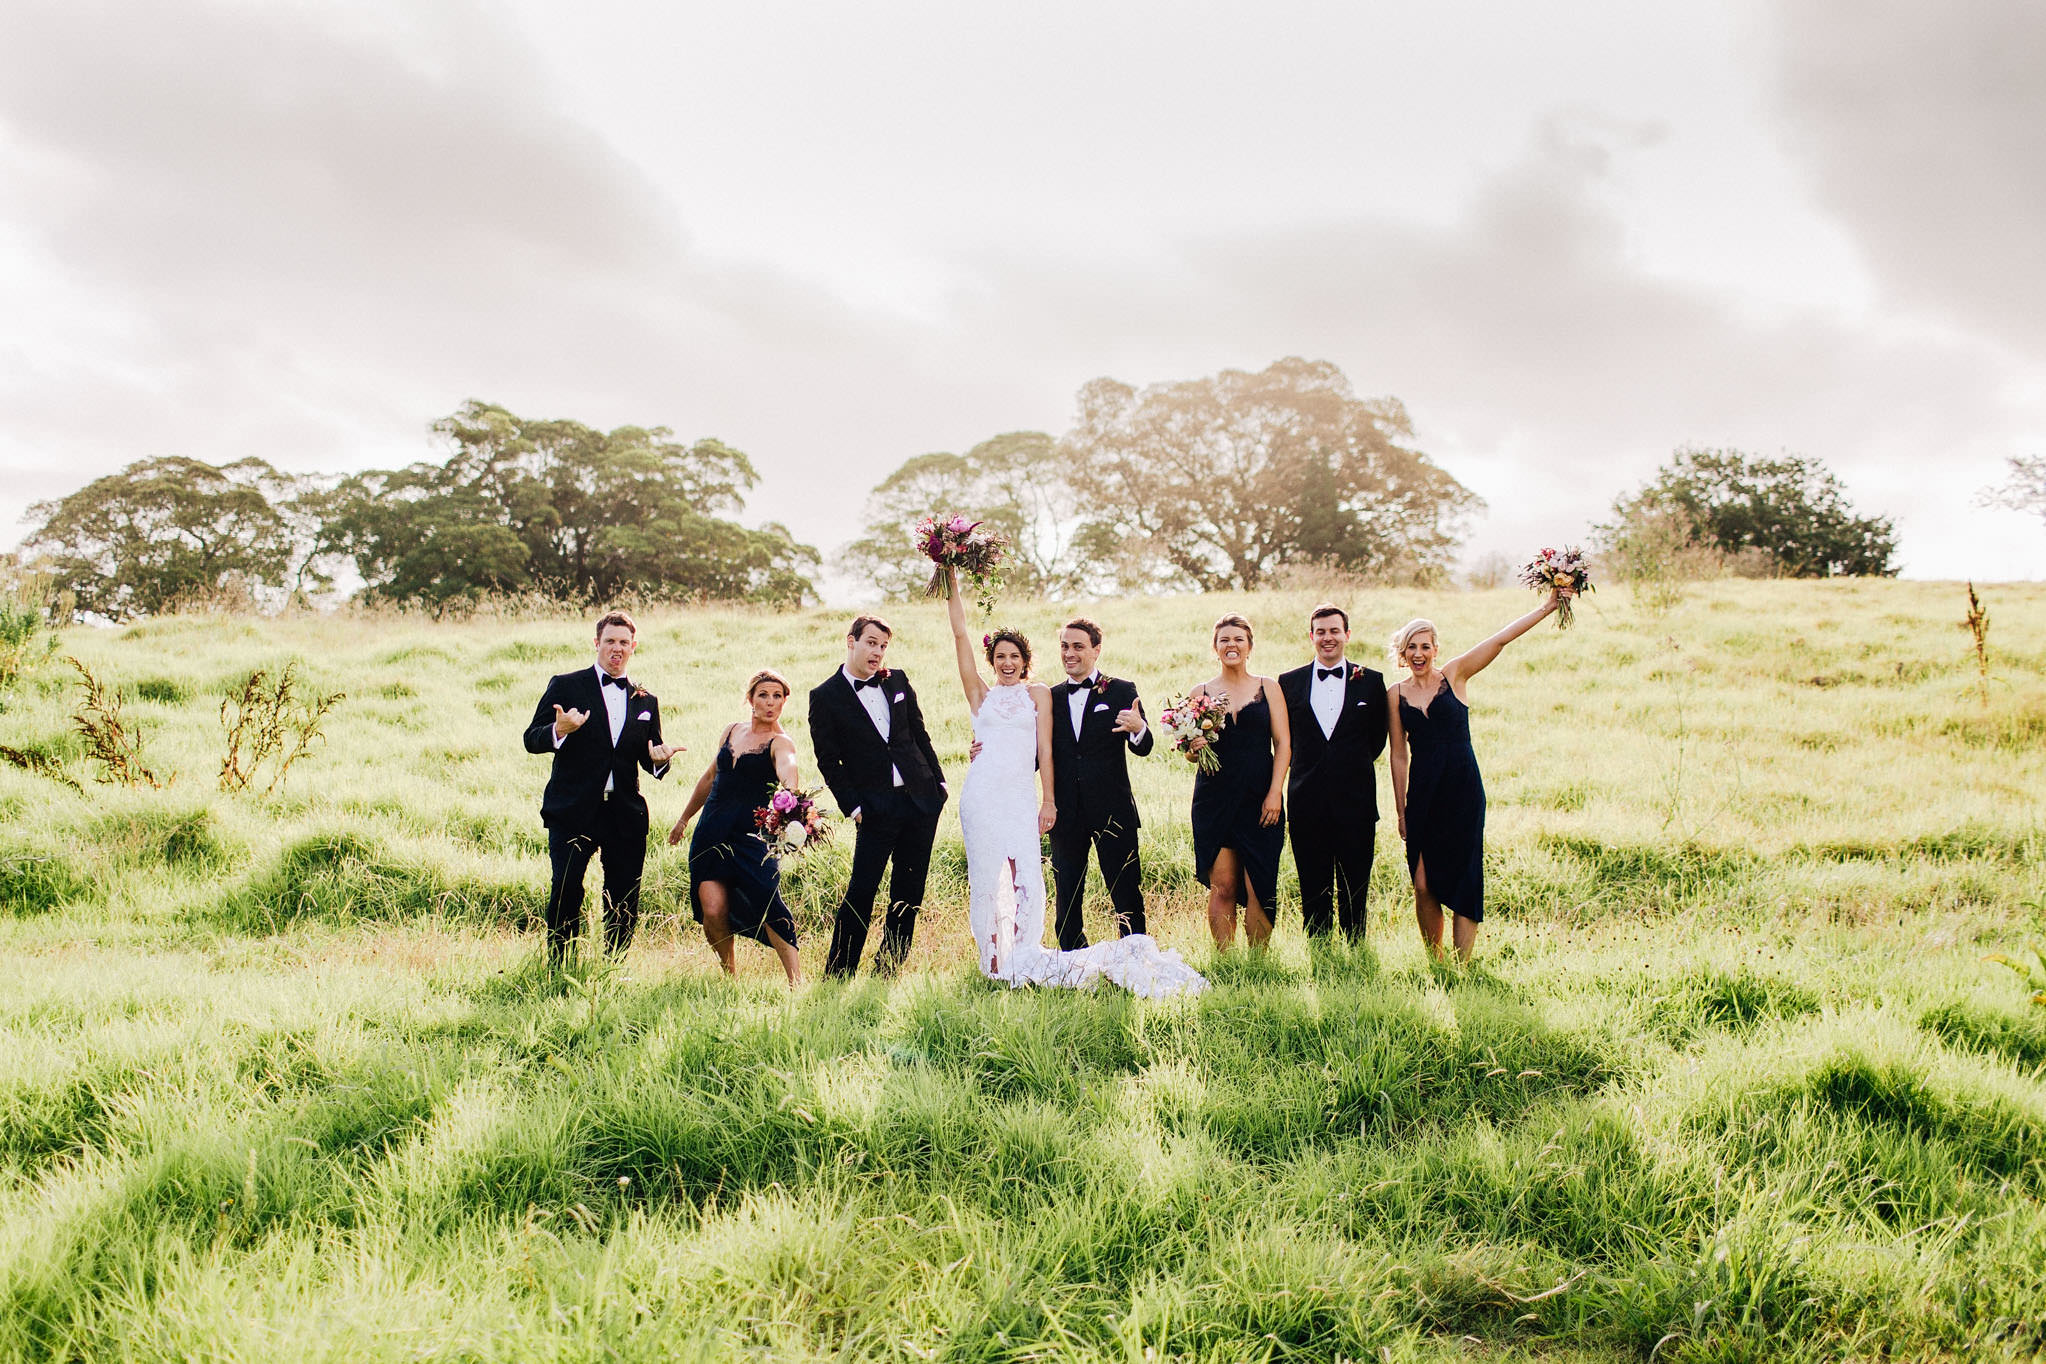 TocalHomestead_WeddingPhotography_LaurenAnnePhotography-1098.jpg